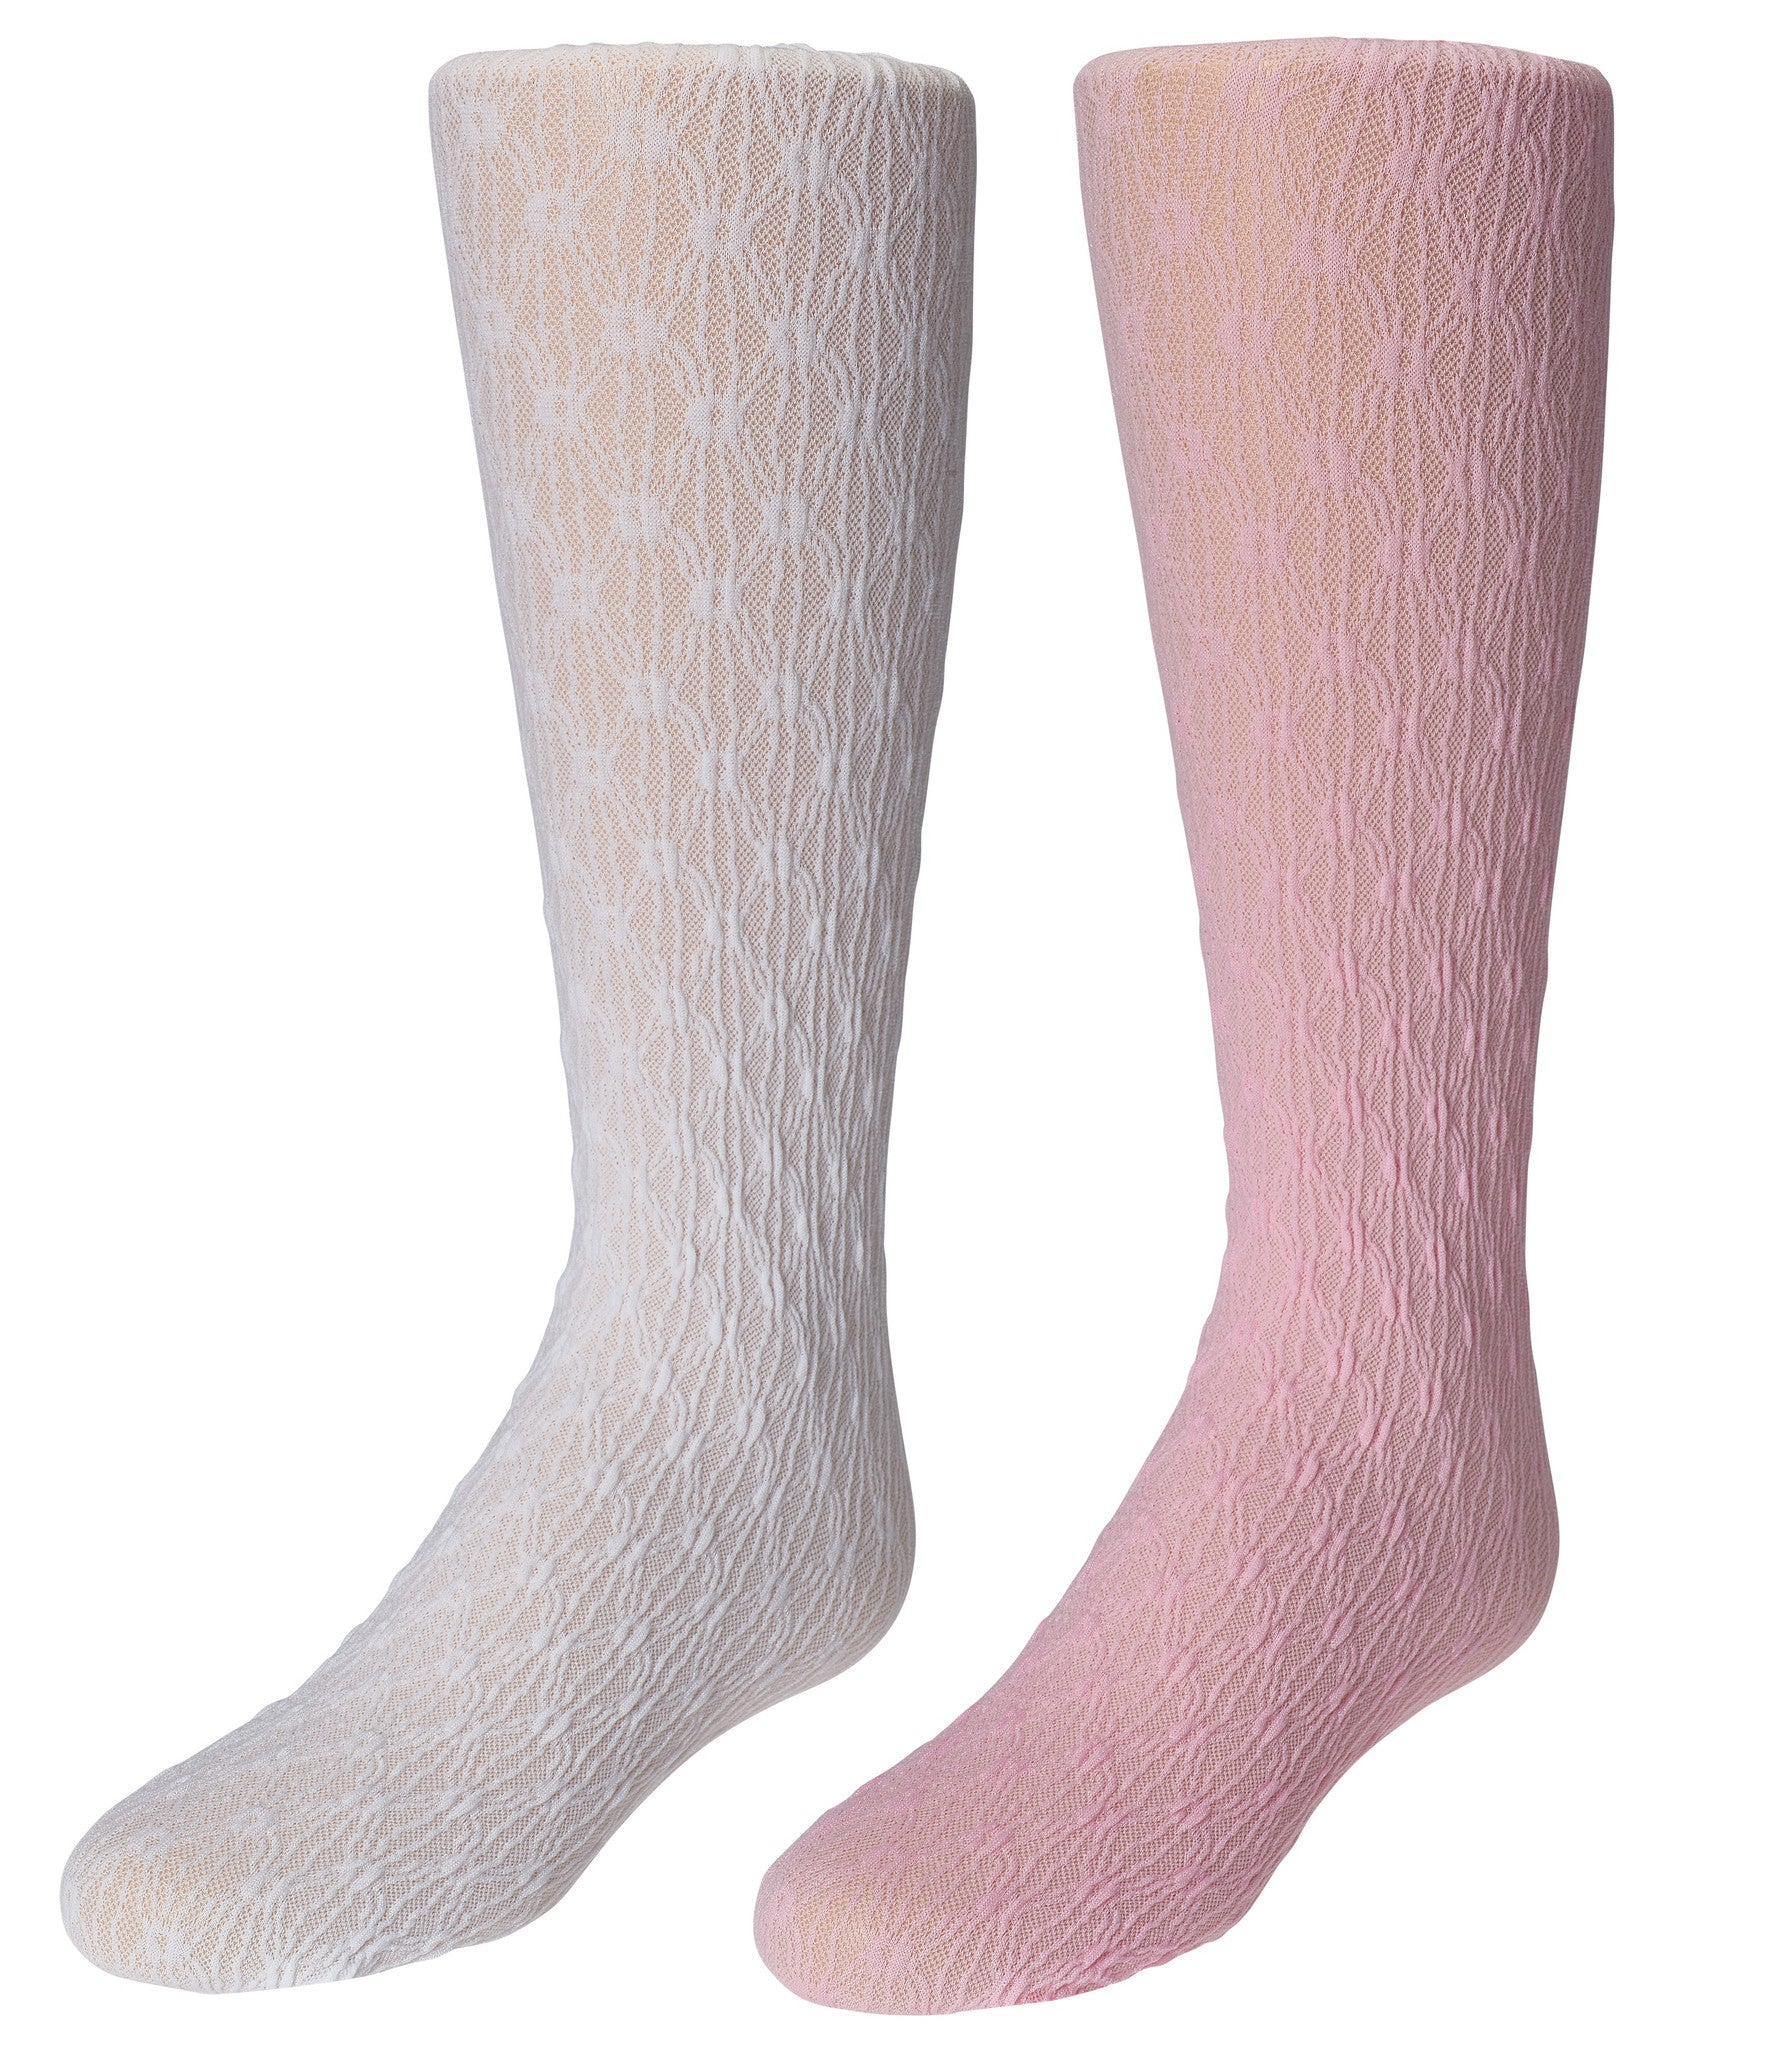 2-Pack Trimfit Floral Diamond Texture Tights